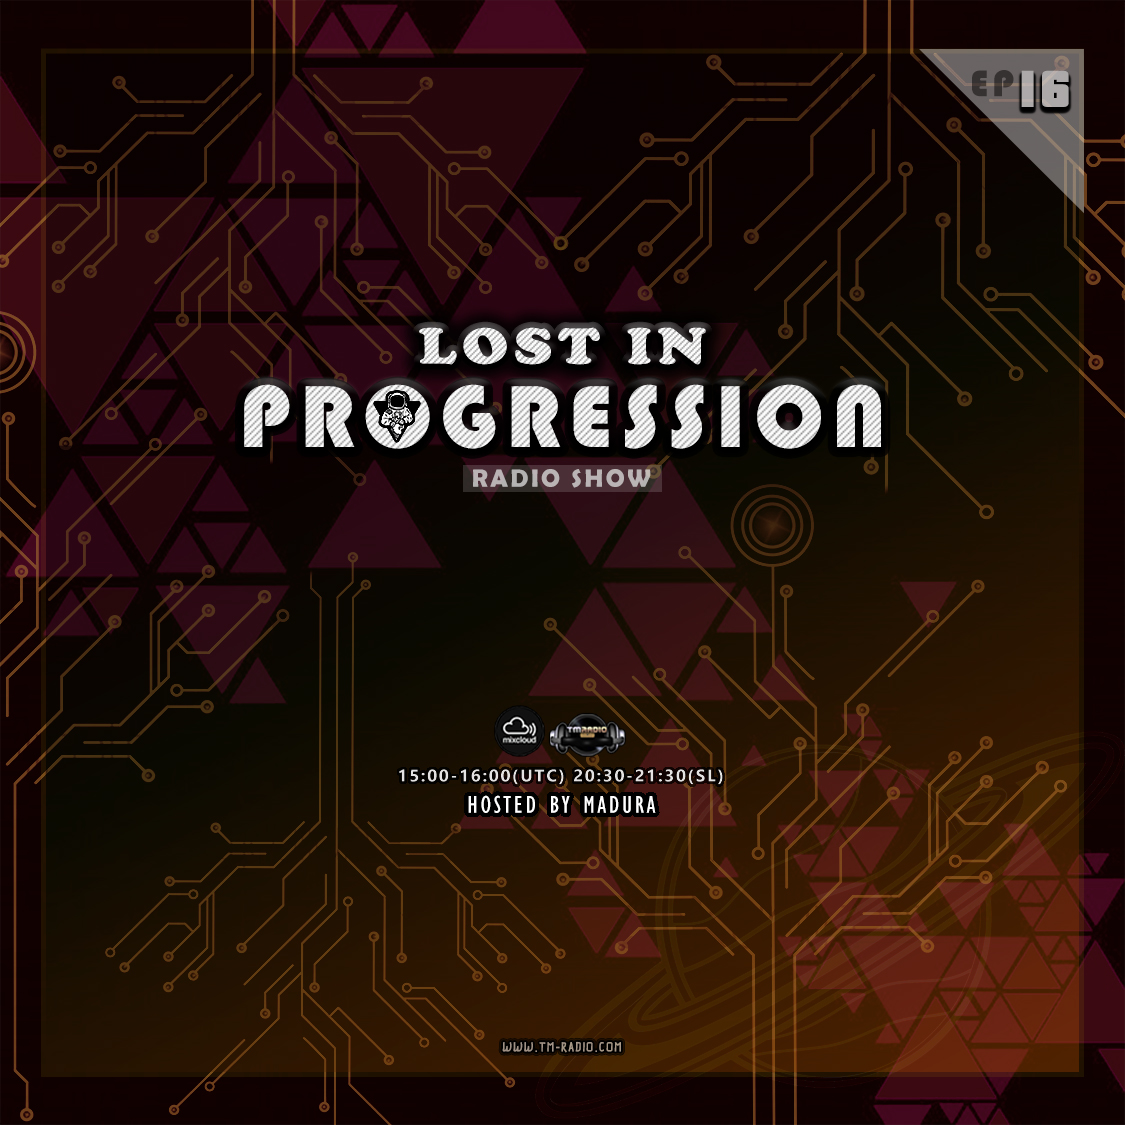 Lost in Progression :: Lost in progression Ep16 (aired on August 14th, 2020) banner logo